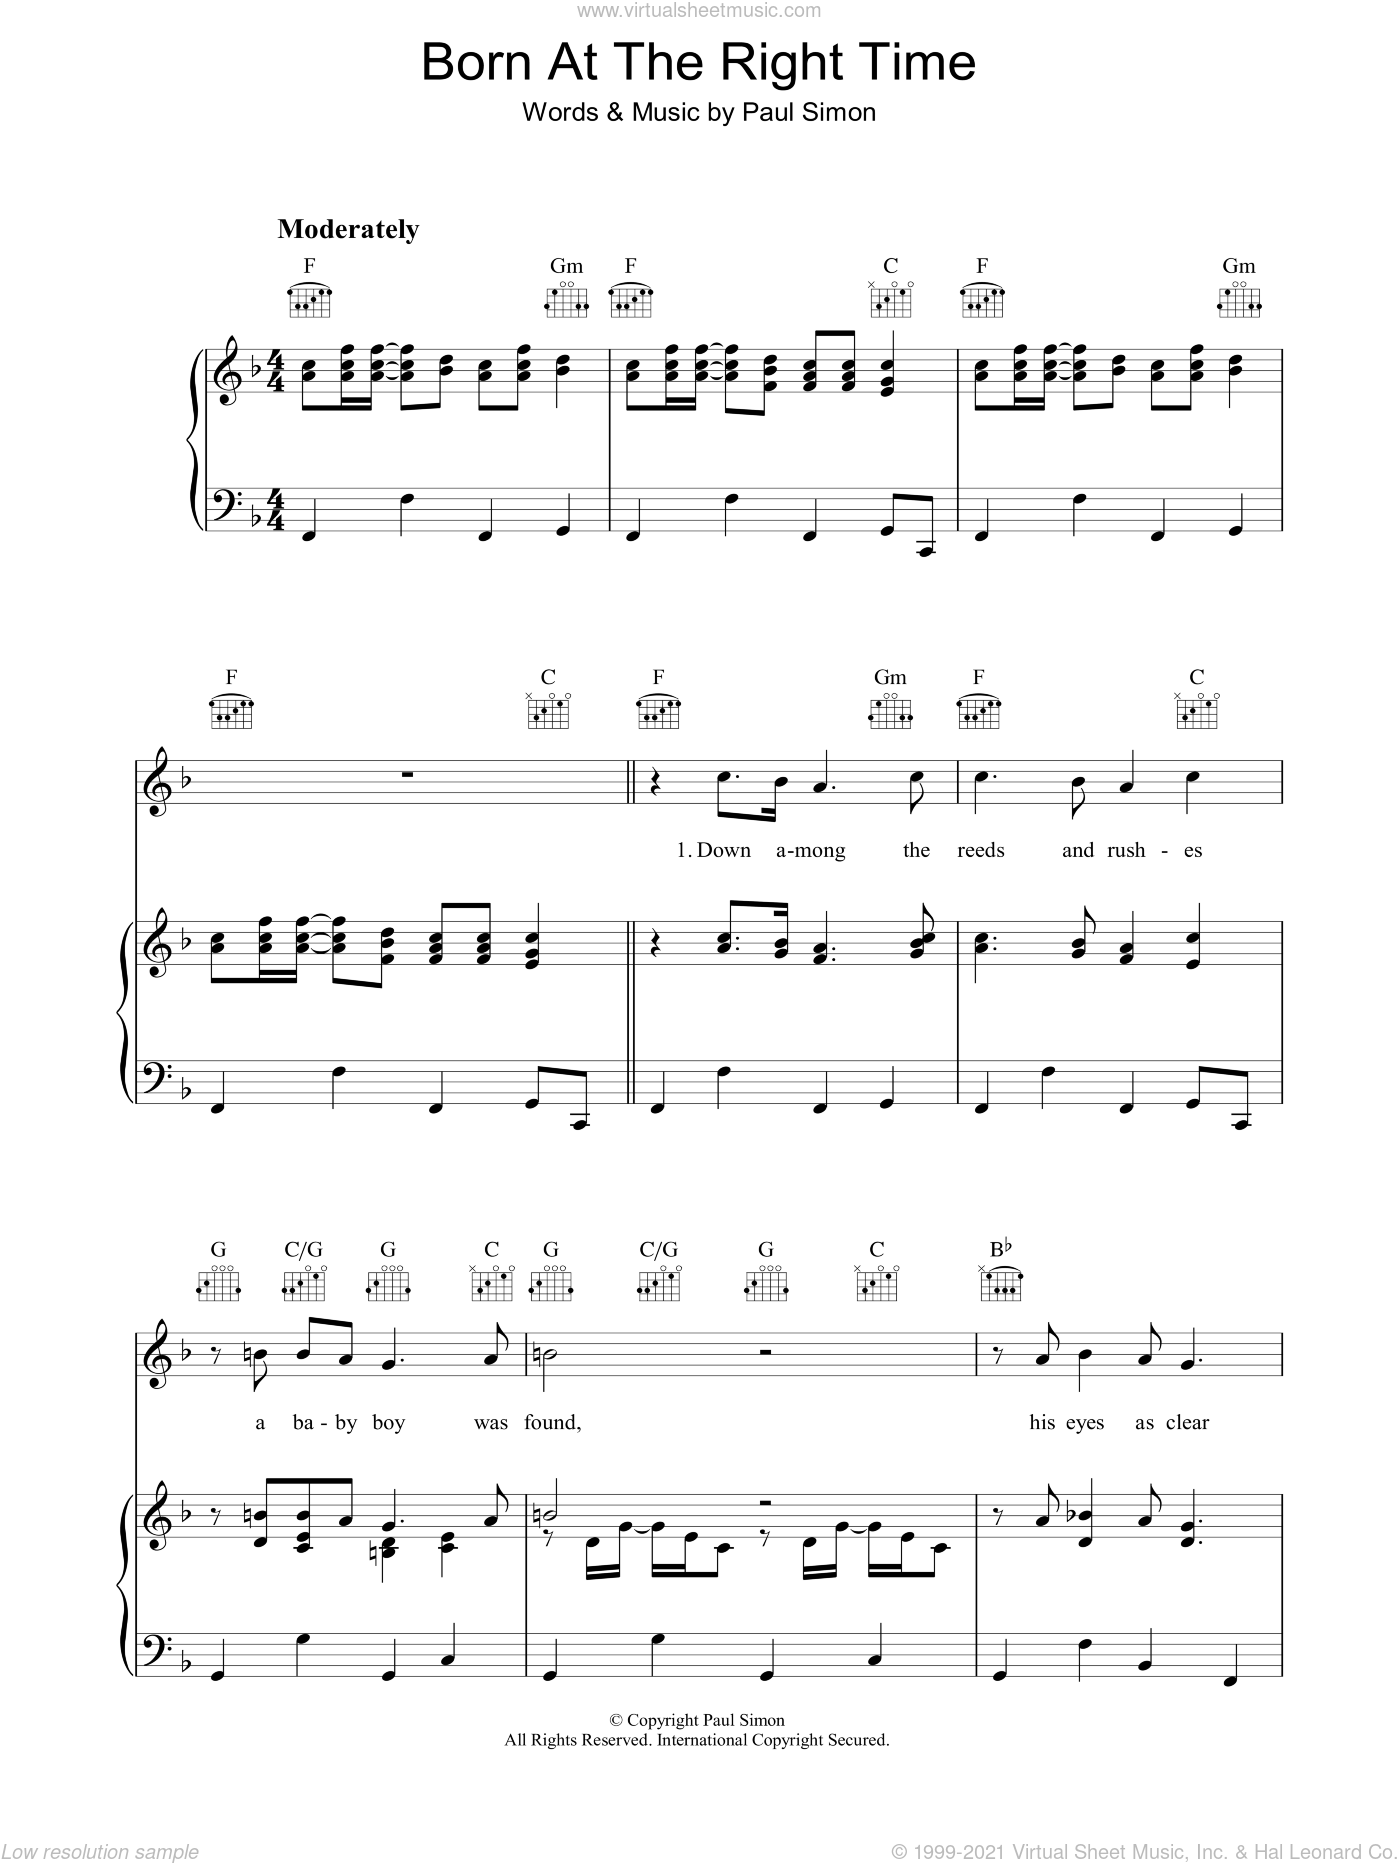 Born At The Right Time sheet music for voice, piano or guitar by Paul Simon